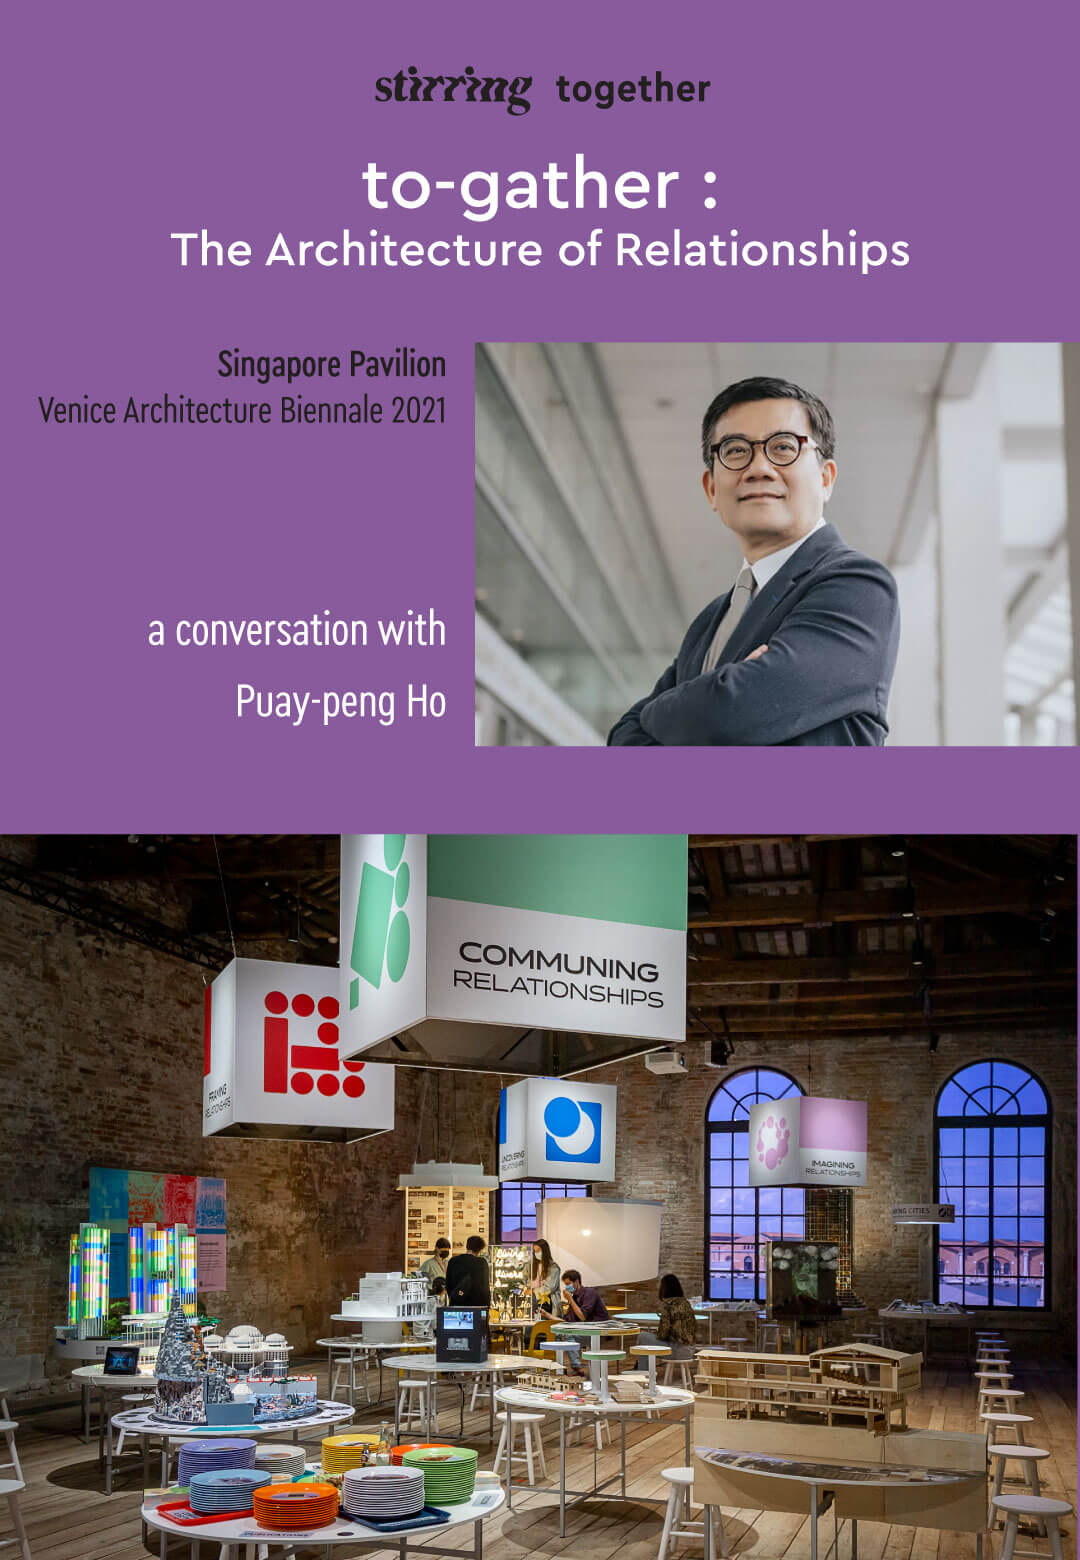 STIR interacts with Prof. Dr. Puay-peng Ho, curator of the SIngapore Pavilion at this year's Venice Architecture Biennale on the architecture of relationships | to-gather: The Architecture of Relationships | Puay-peng Ho | STIRworld